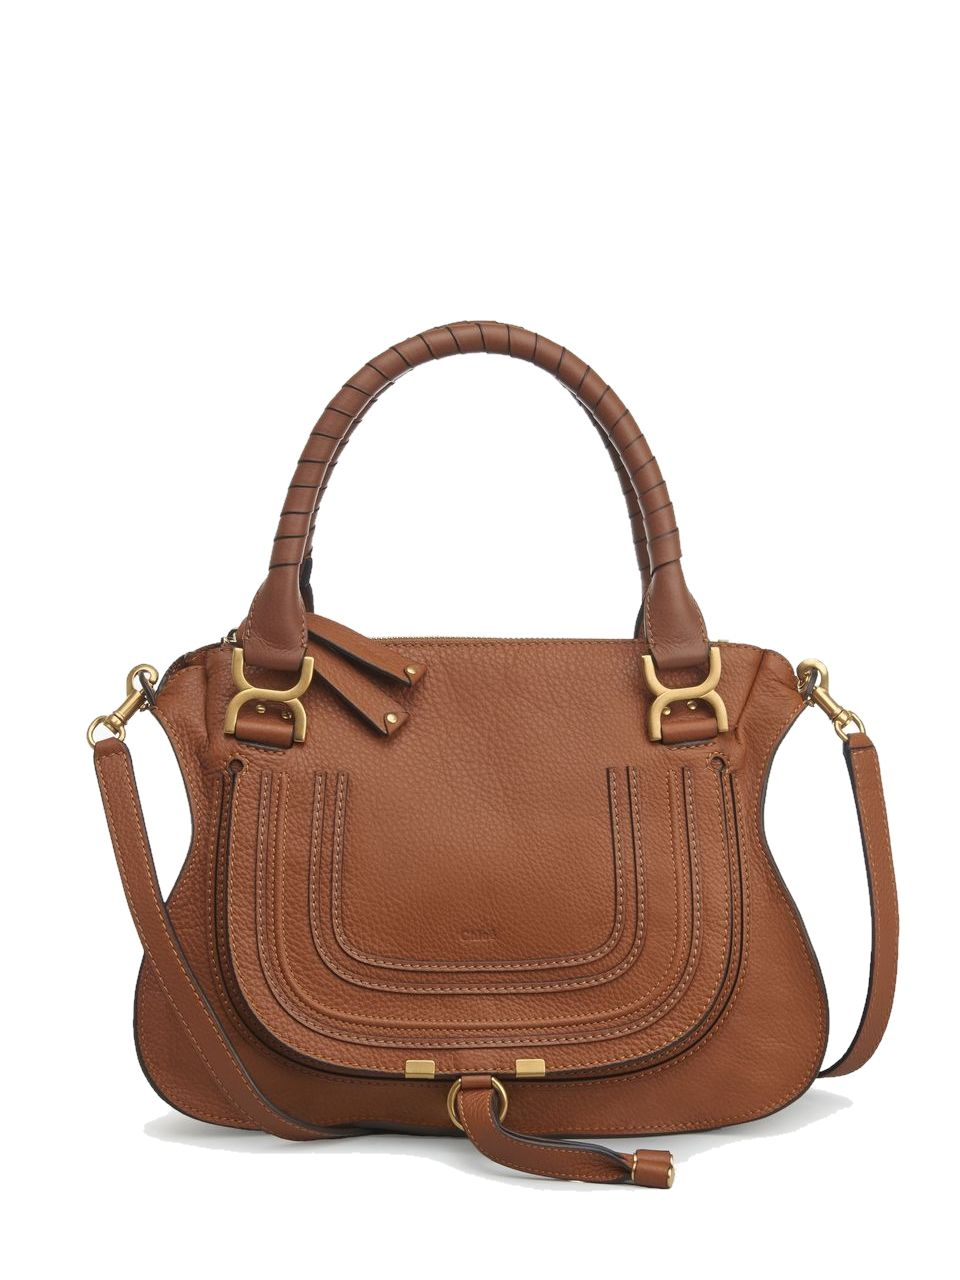 CHLOÉ CHLOE BROWN MARCIE HANDBAG